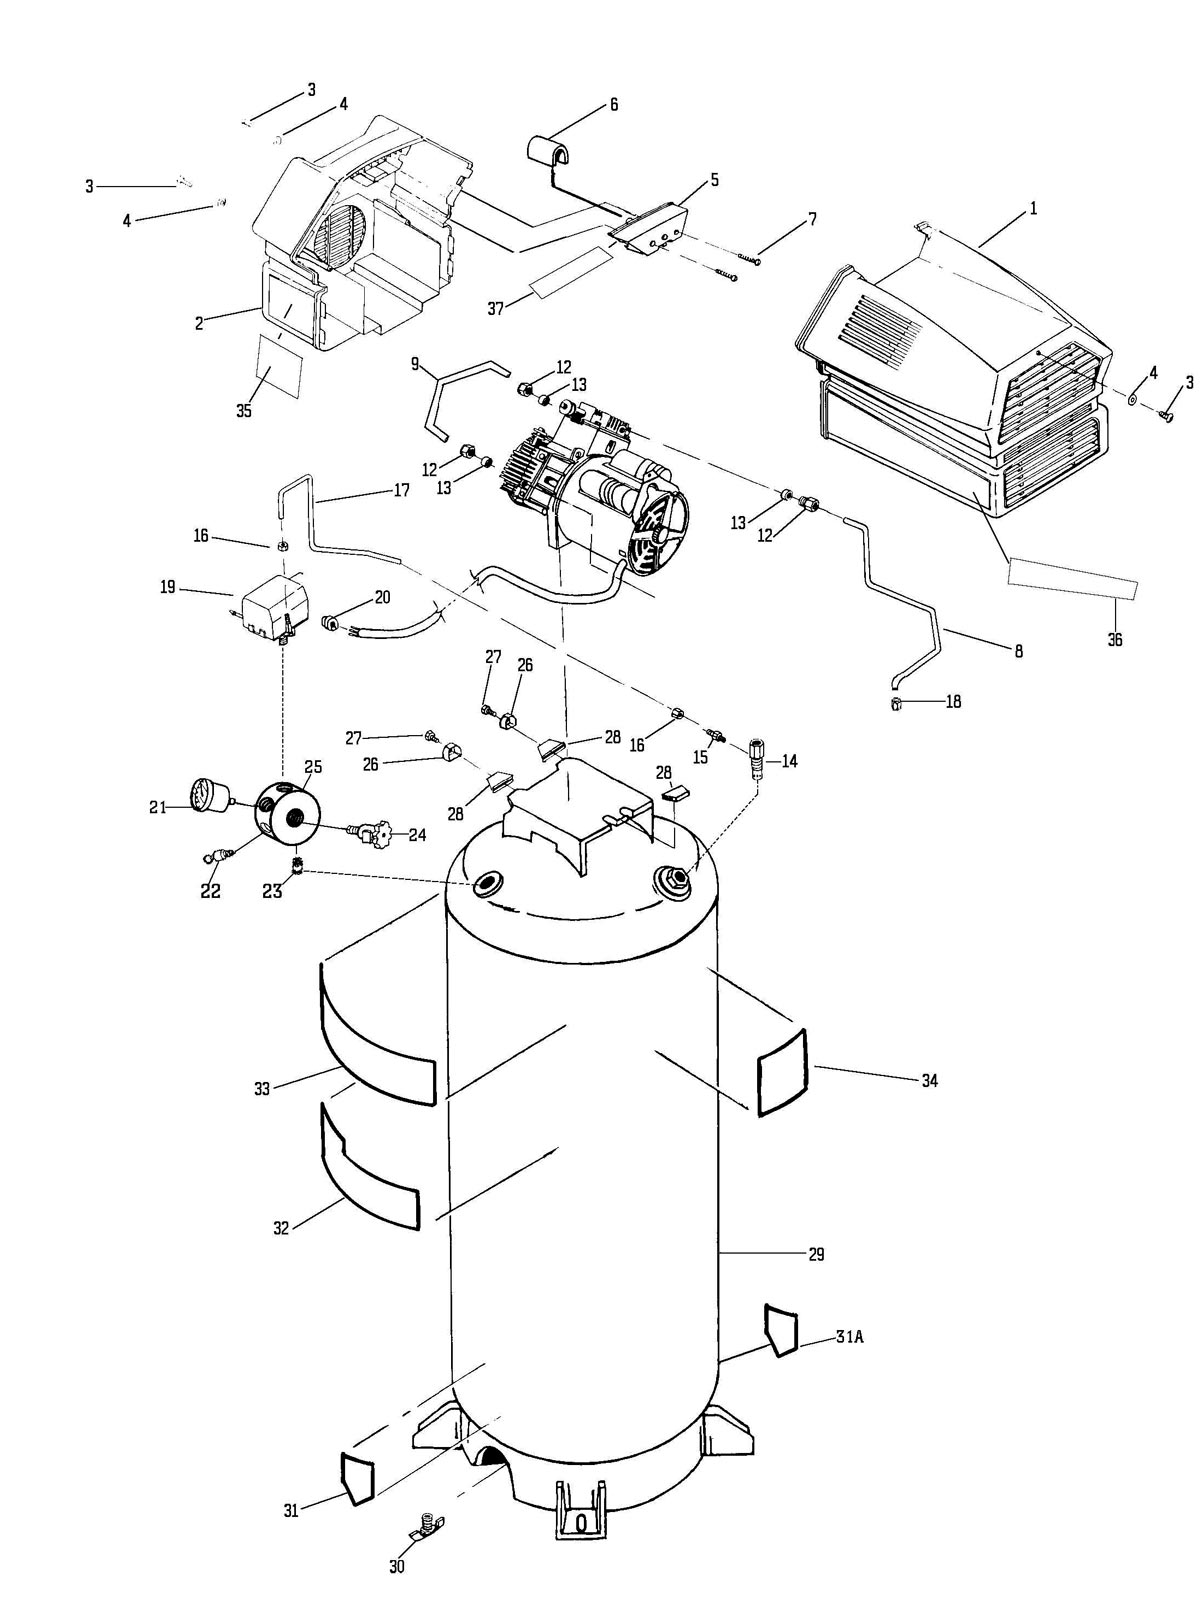 919.727270 - Air Compressor Parts schematic